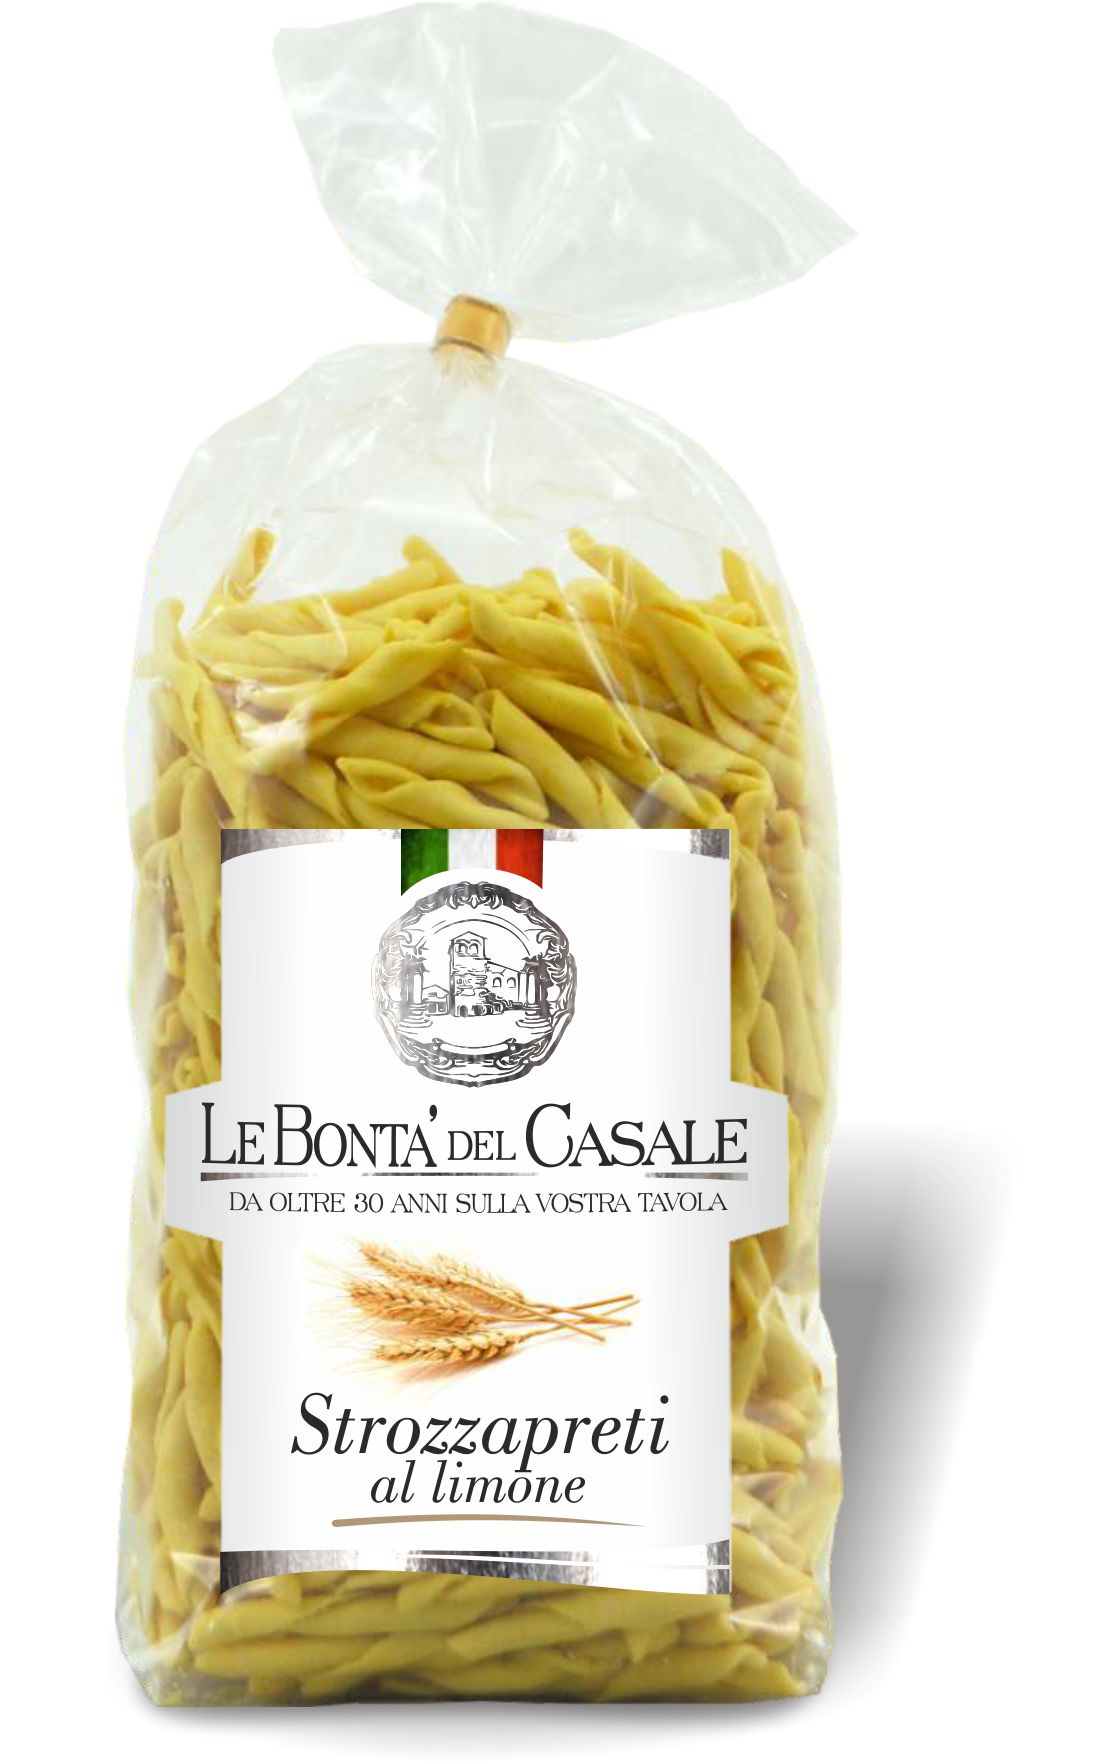 Strozzapreti lemon flavored